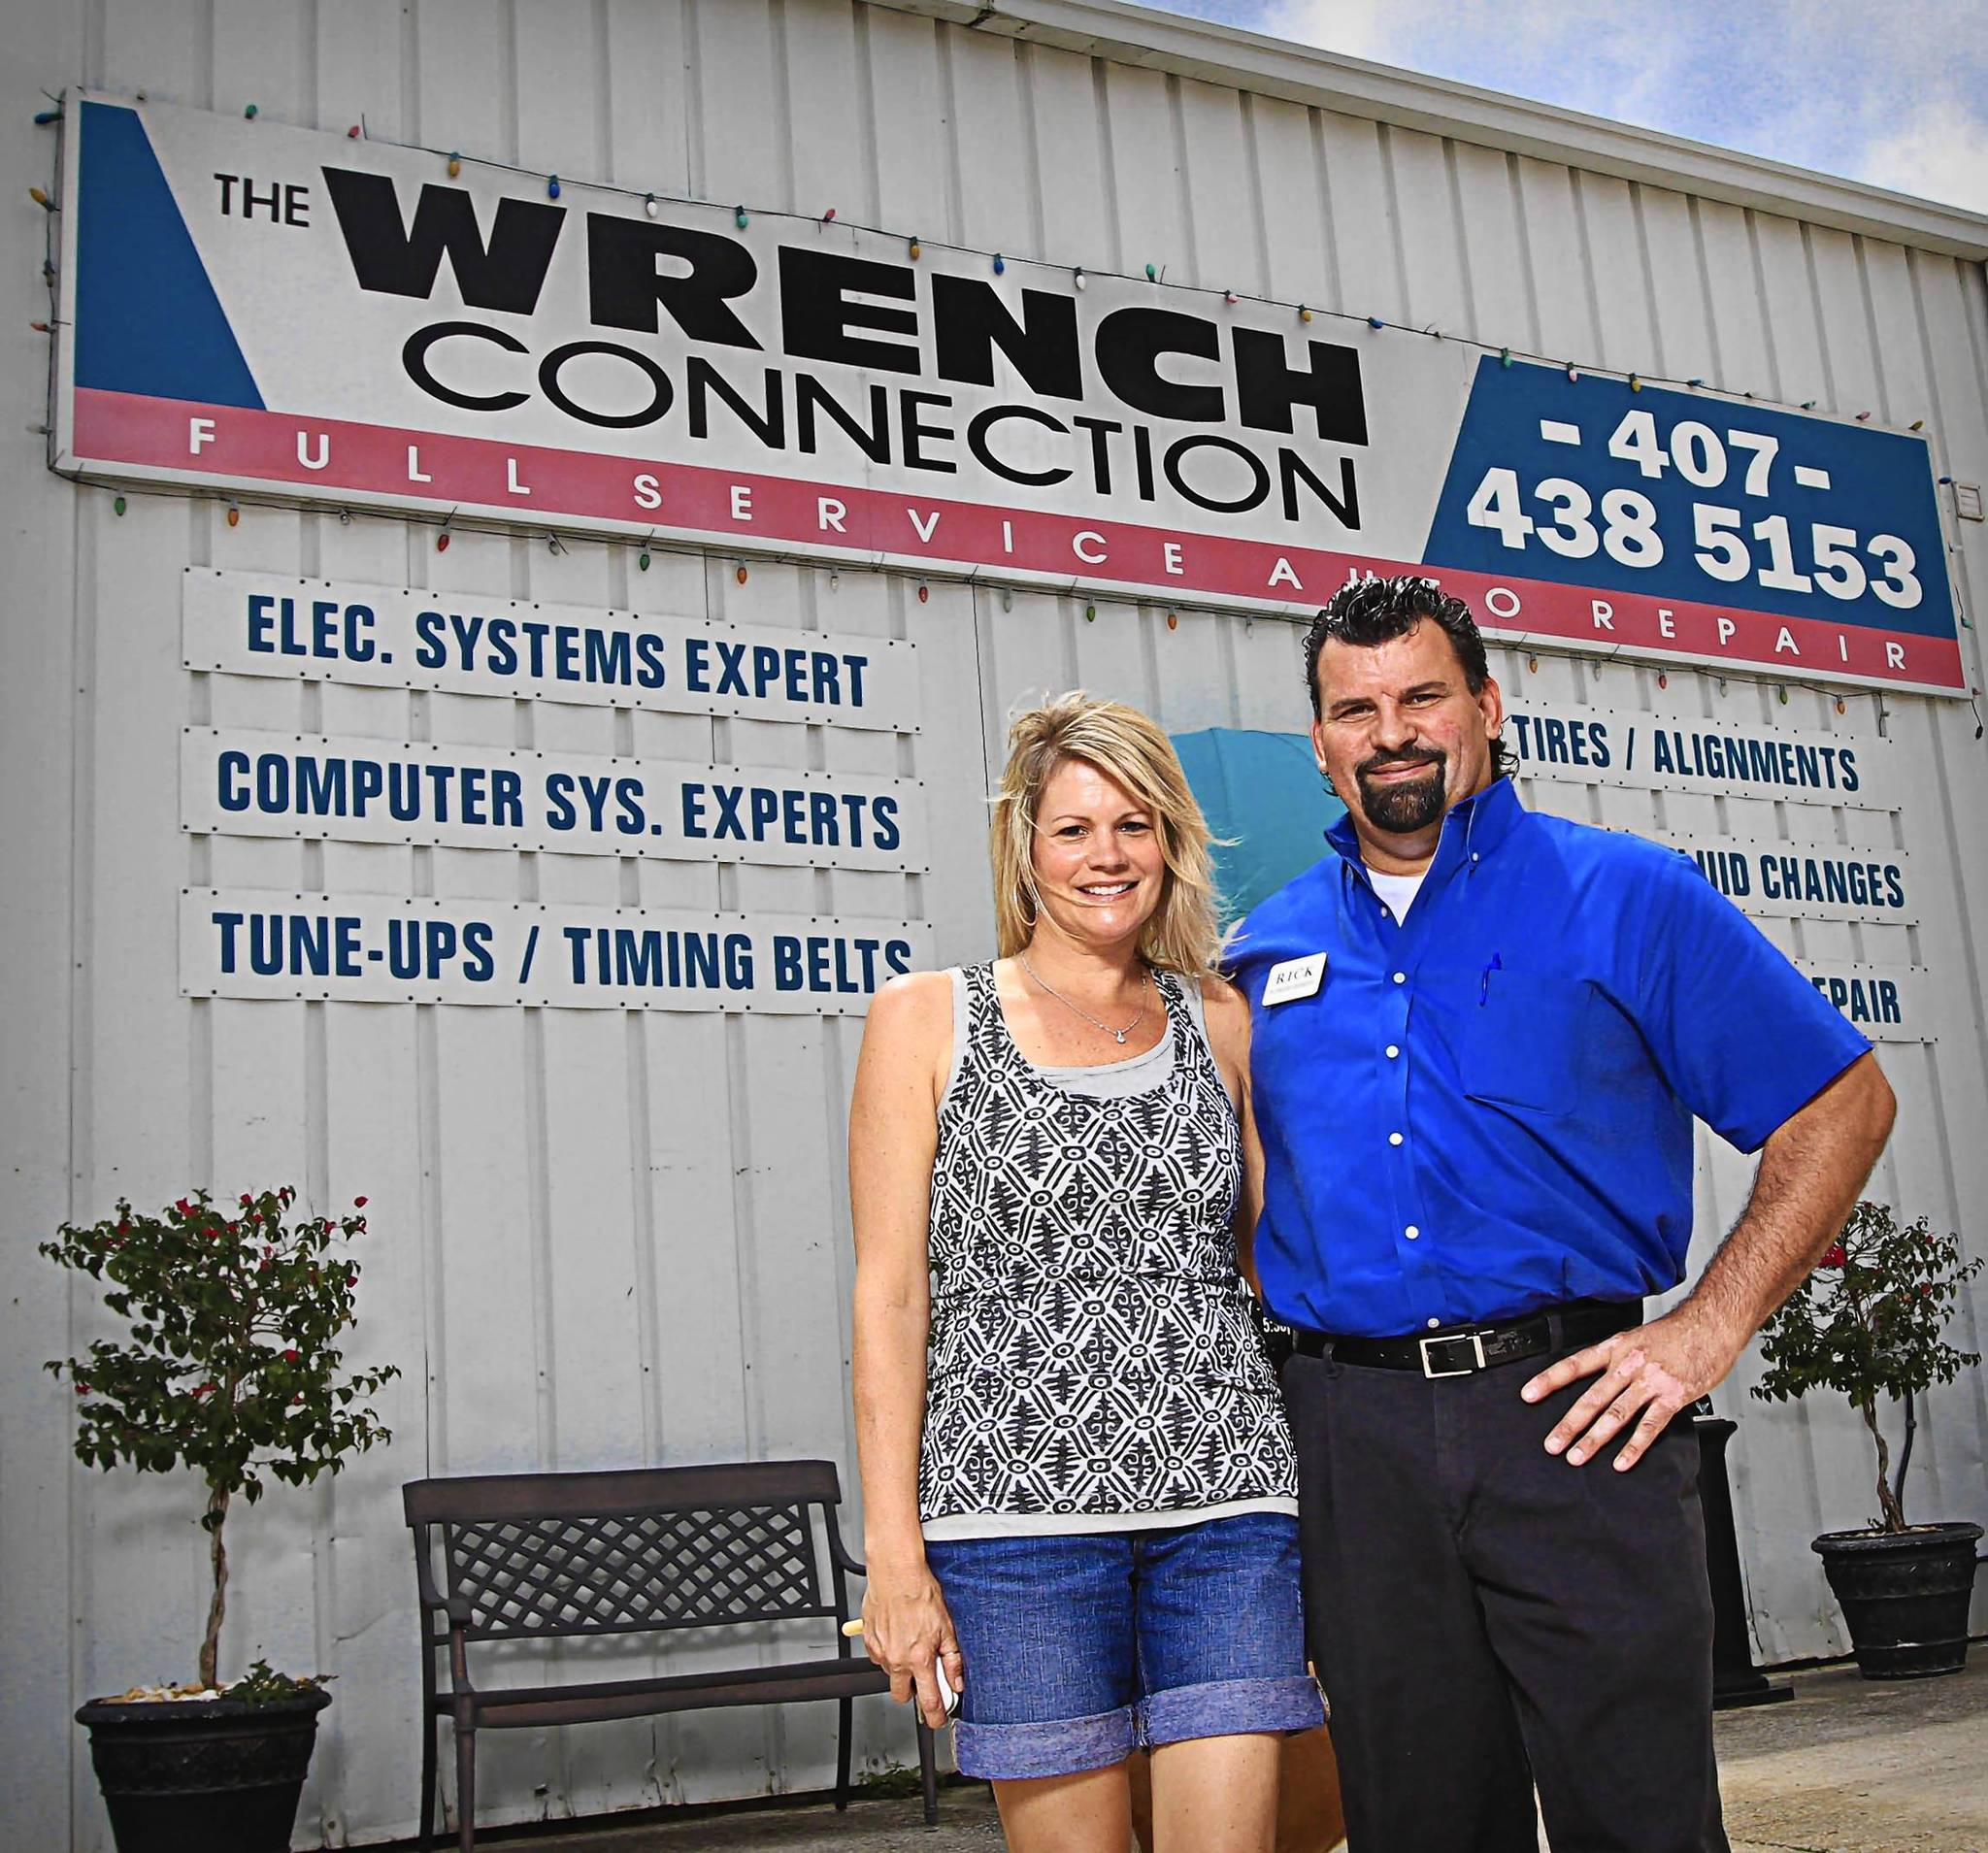 Rick Eakins, the owner of Wrench Connection, poses for a photo with his wife, Diane, at his business in Orlando on Thursday.